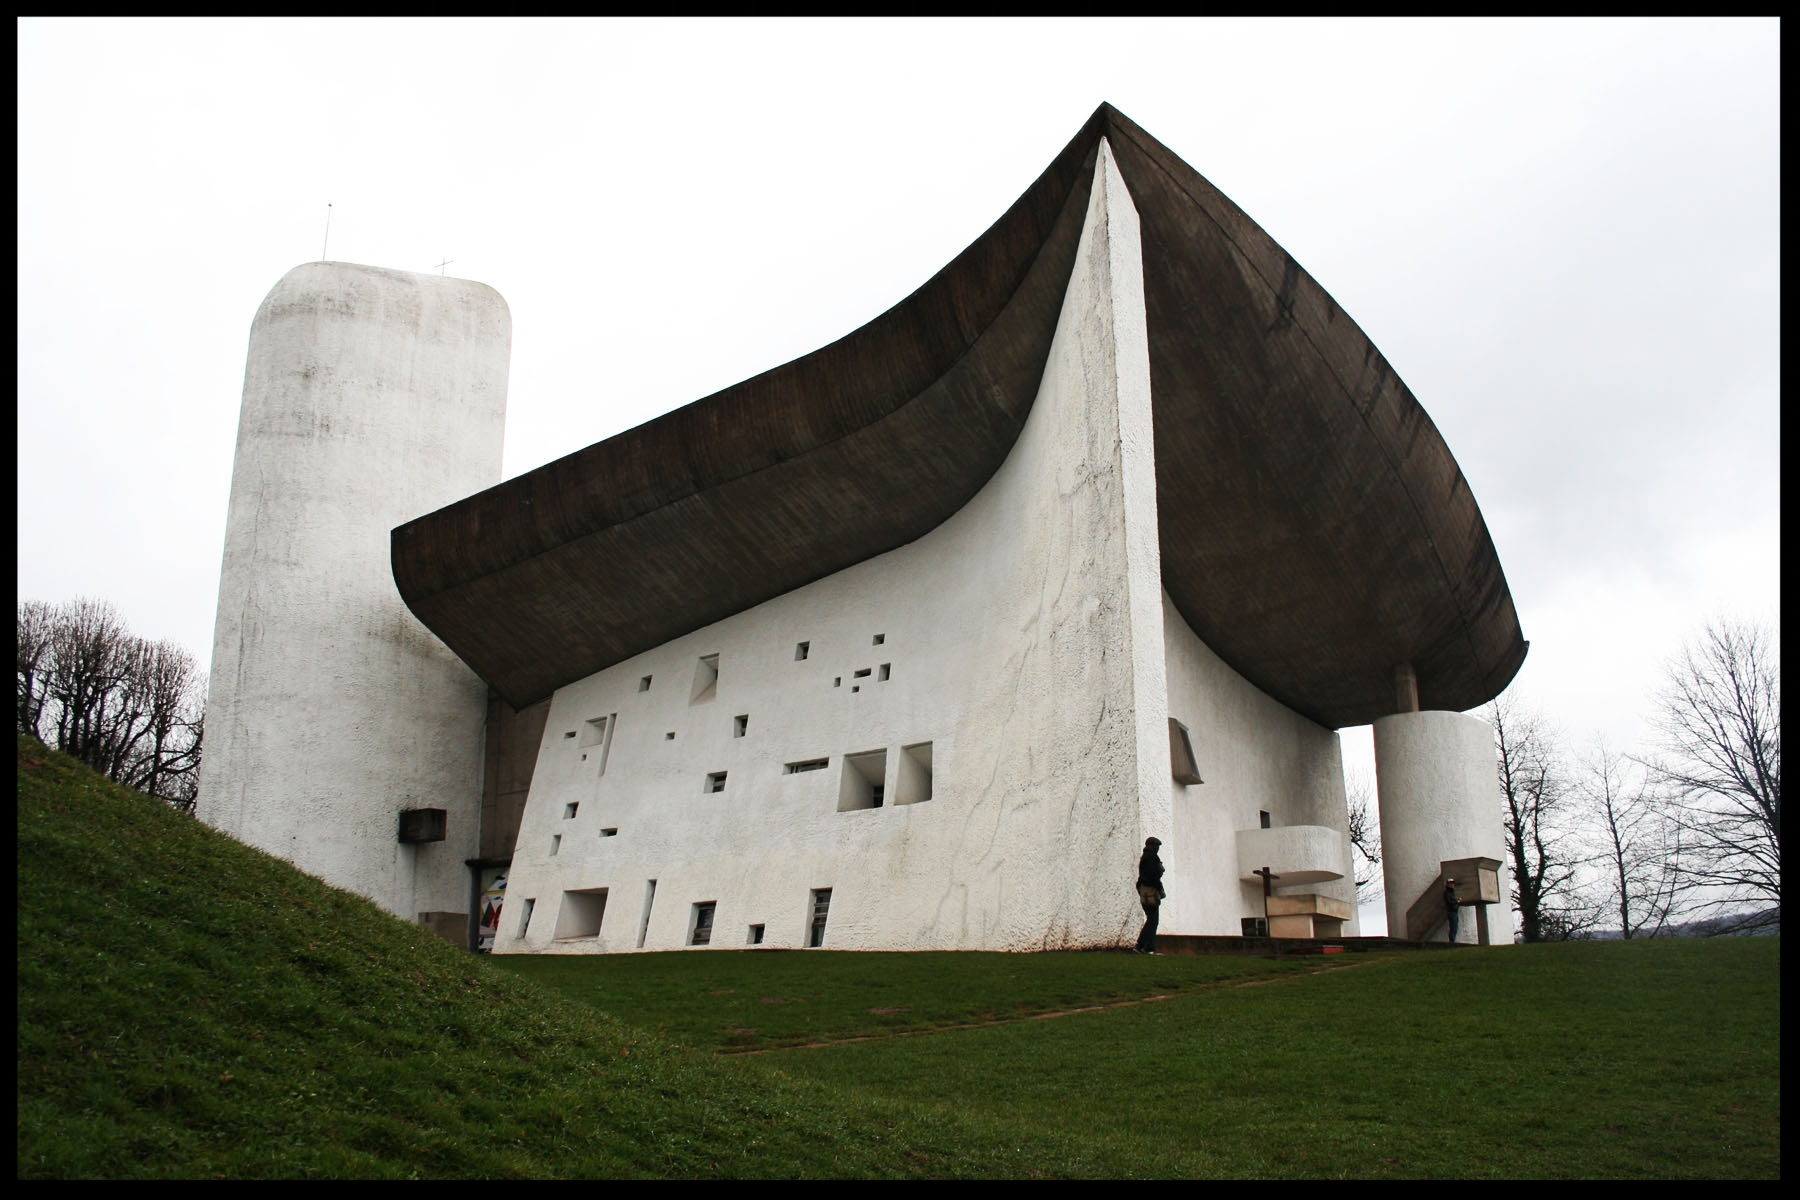 Le Corbusier Church at Ronchamp, France